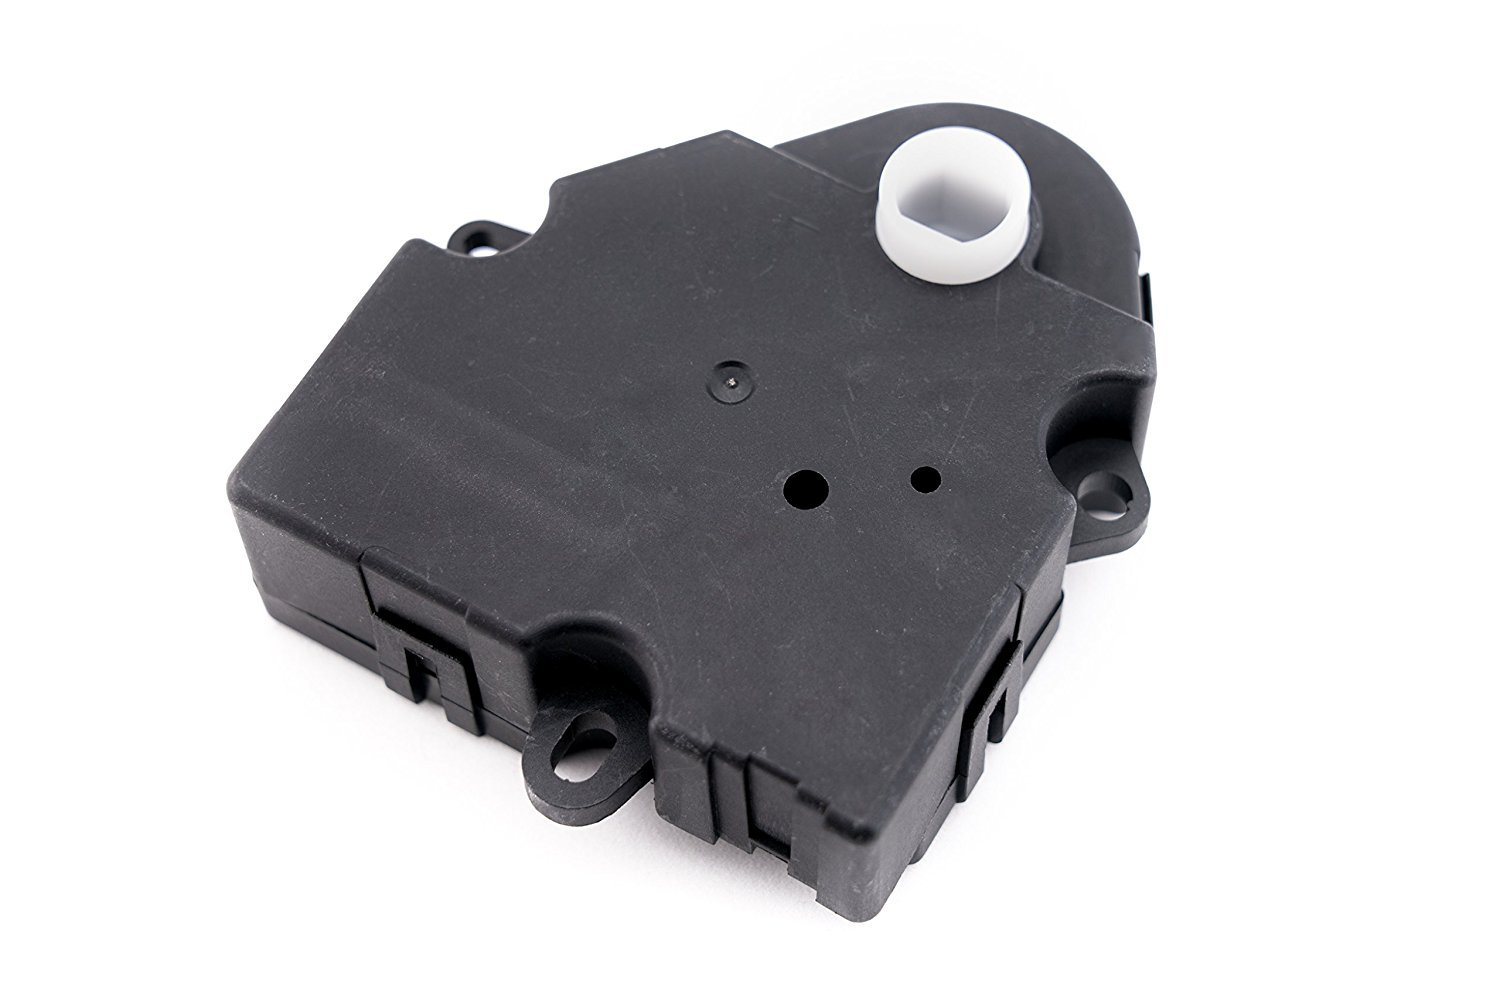 Air Door Actuator - Replaces# 15-73952, 52495593, 89018374, 604-112 - Fits 2003-2014 Chevrolet, Chevy, GMC, Cadillac, Hummer Models - HVAC Blend Control Actuator - Air Heater Blend Door